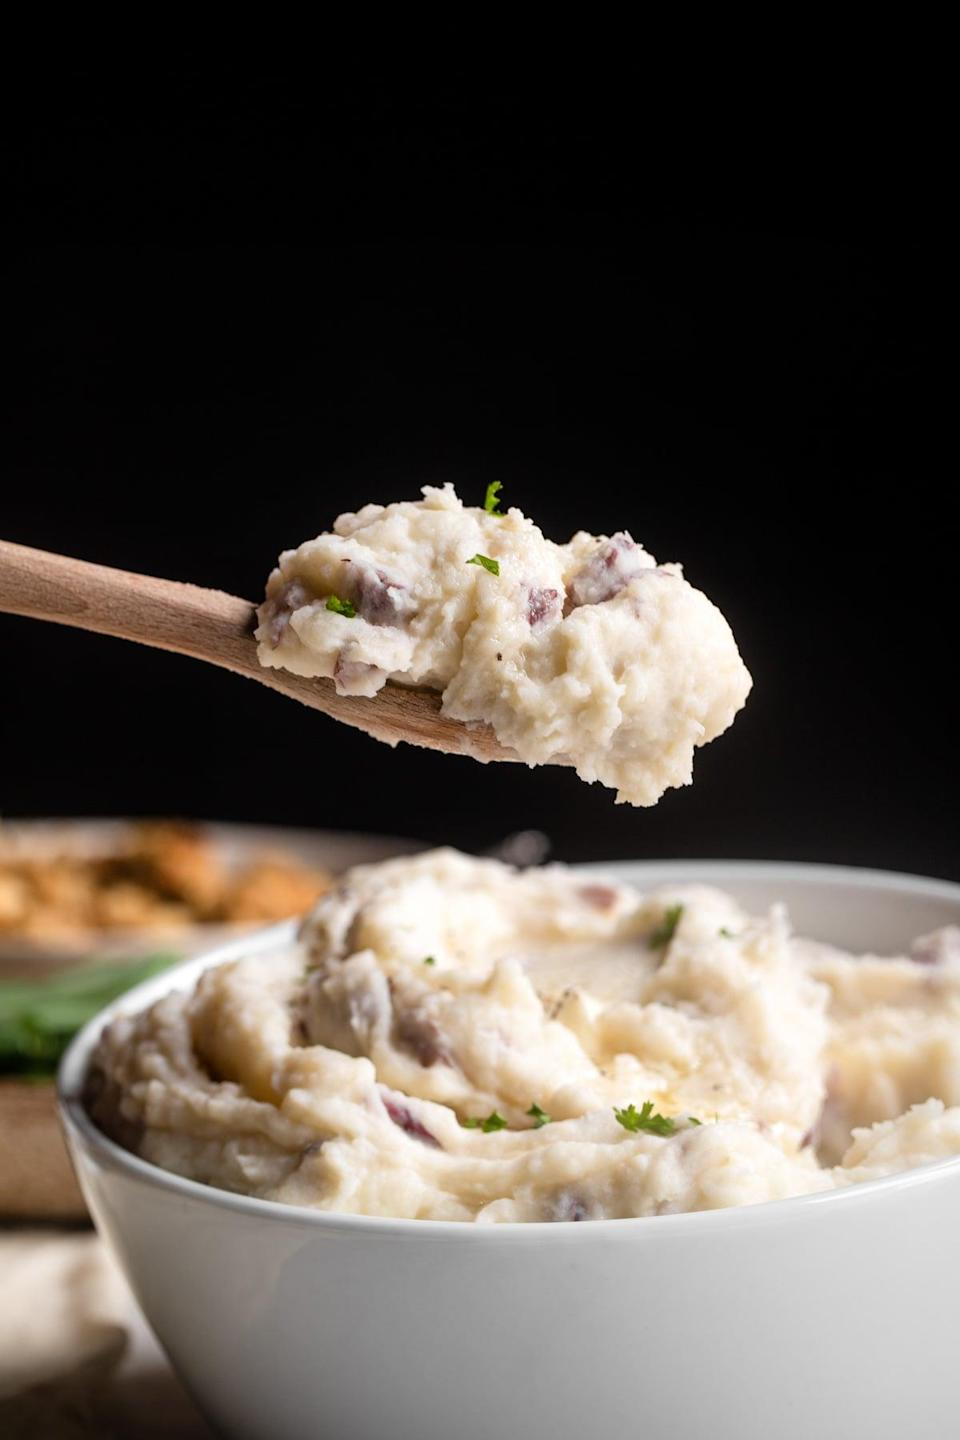 """<p>Eat mashed potatoes that make you feel good when you experiment with this healthy recipe. Complex carbohydrates and vitamins can be found in red potatoes, providing your body with the energy and vitamin C it needs. Top 'em off with some gravy, and you'll be basking in true dinnertime happiness.</p> <p><strong>Get the recipe</strong>: <a href=""""https://www.foodfaithfitness.com/red-skin-mashed-potatoes/?utm_source=feedburner&utm_medium=feed&utm_campaign=Feed%3A+foodfaithfitness%2FryFv+%28Food+Faith+Fitness%29"""" class=""""link rapid-noclick-resp"""" rel=""""nofollow noopener"""" target=""""_blank"""" data-ylk=""""slk:red skin mashed potatoes"""">red skin mashed potatoes</a></p>"""